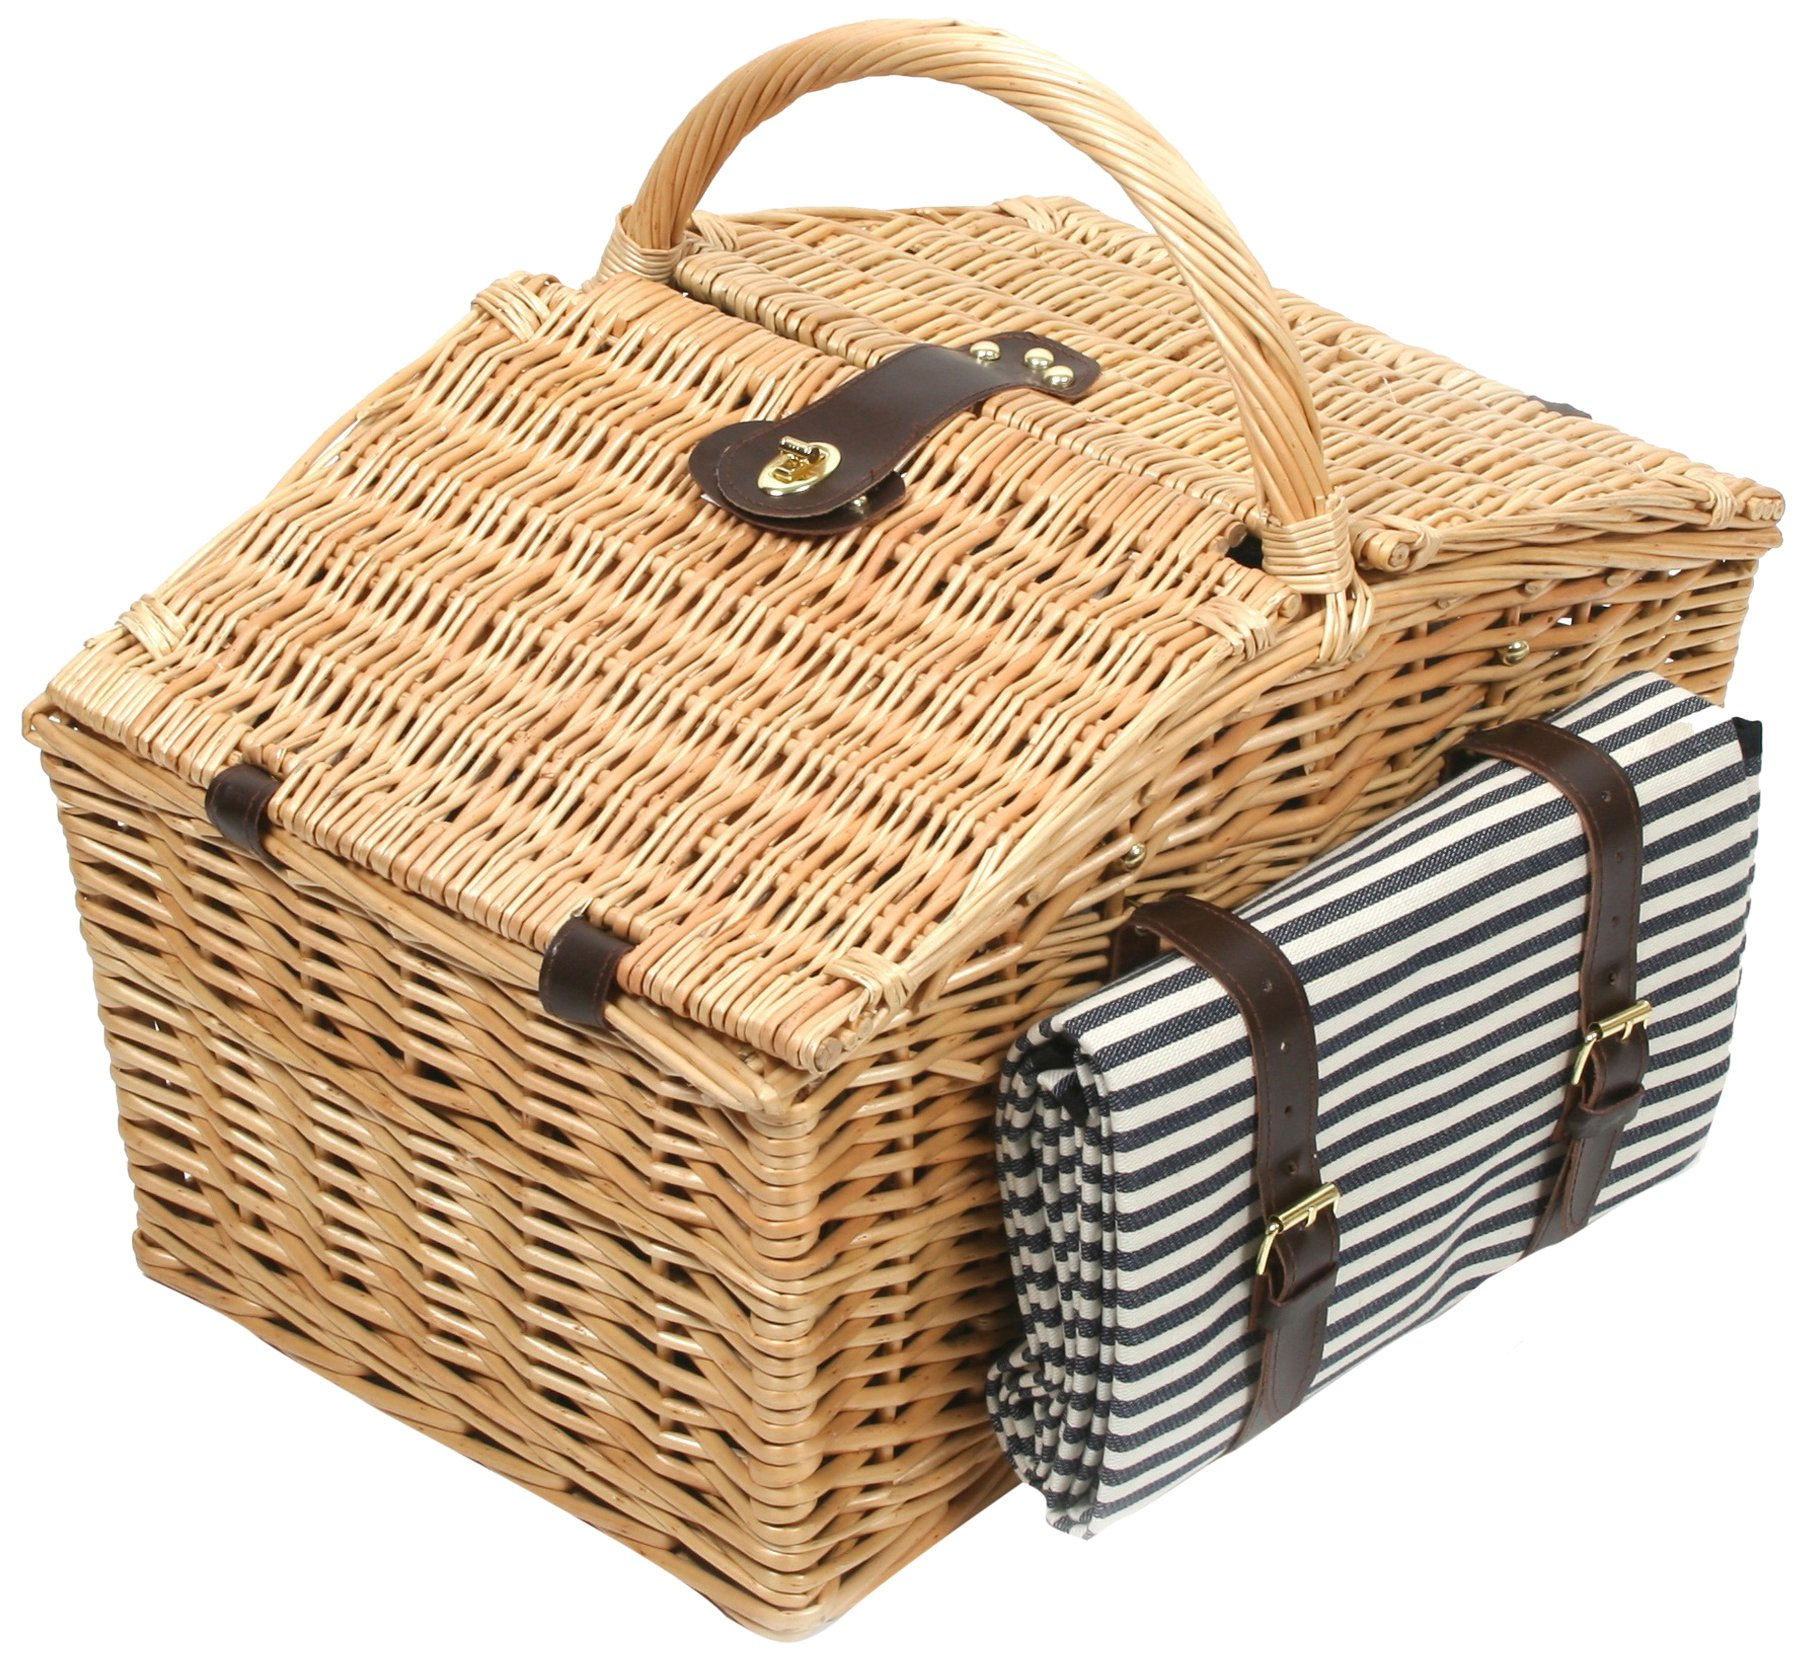 Greenfield Collection Deluxe Somerley Willow 4 Person Picnic Hamper with Matching Blanket - Midnight Blue and White Striped Lining by Greenfield Collection